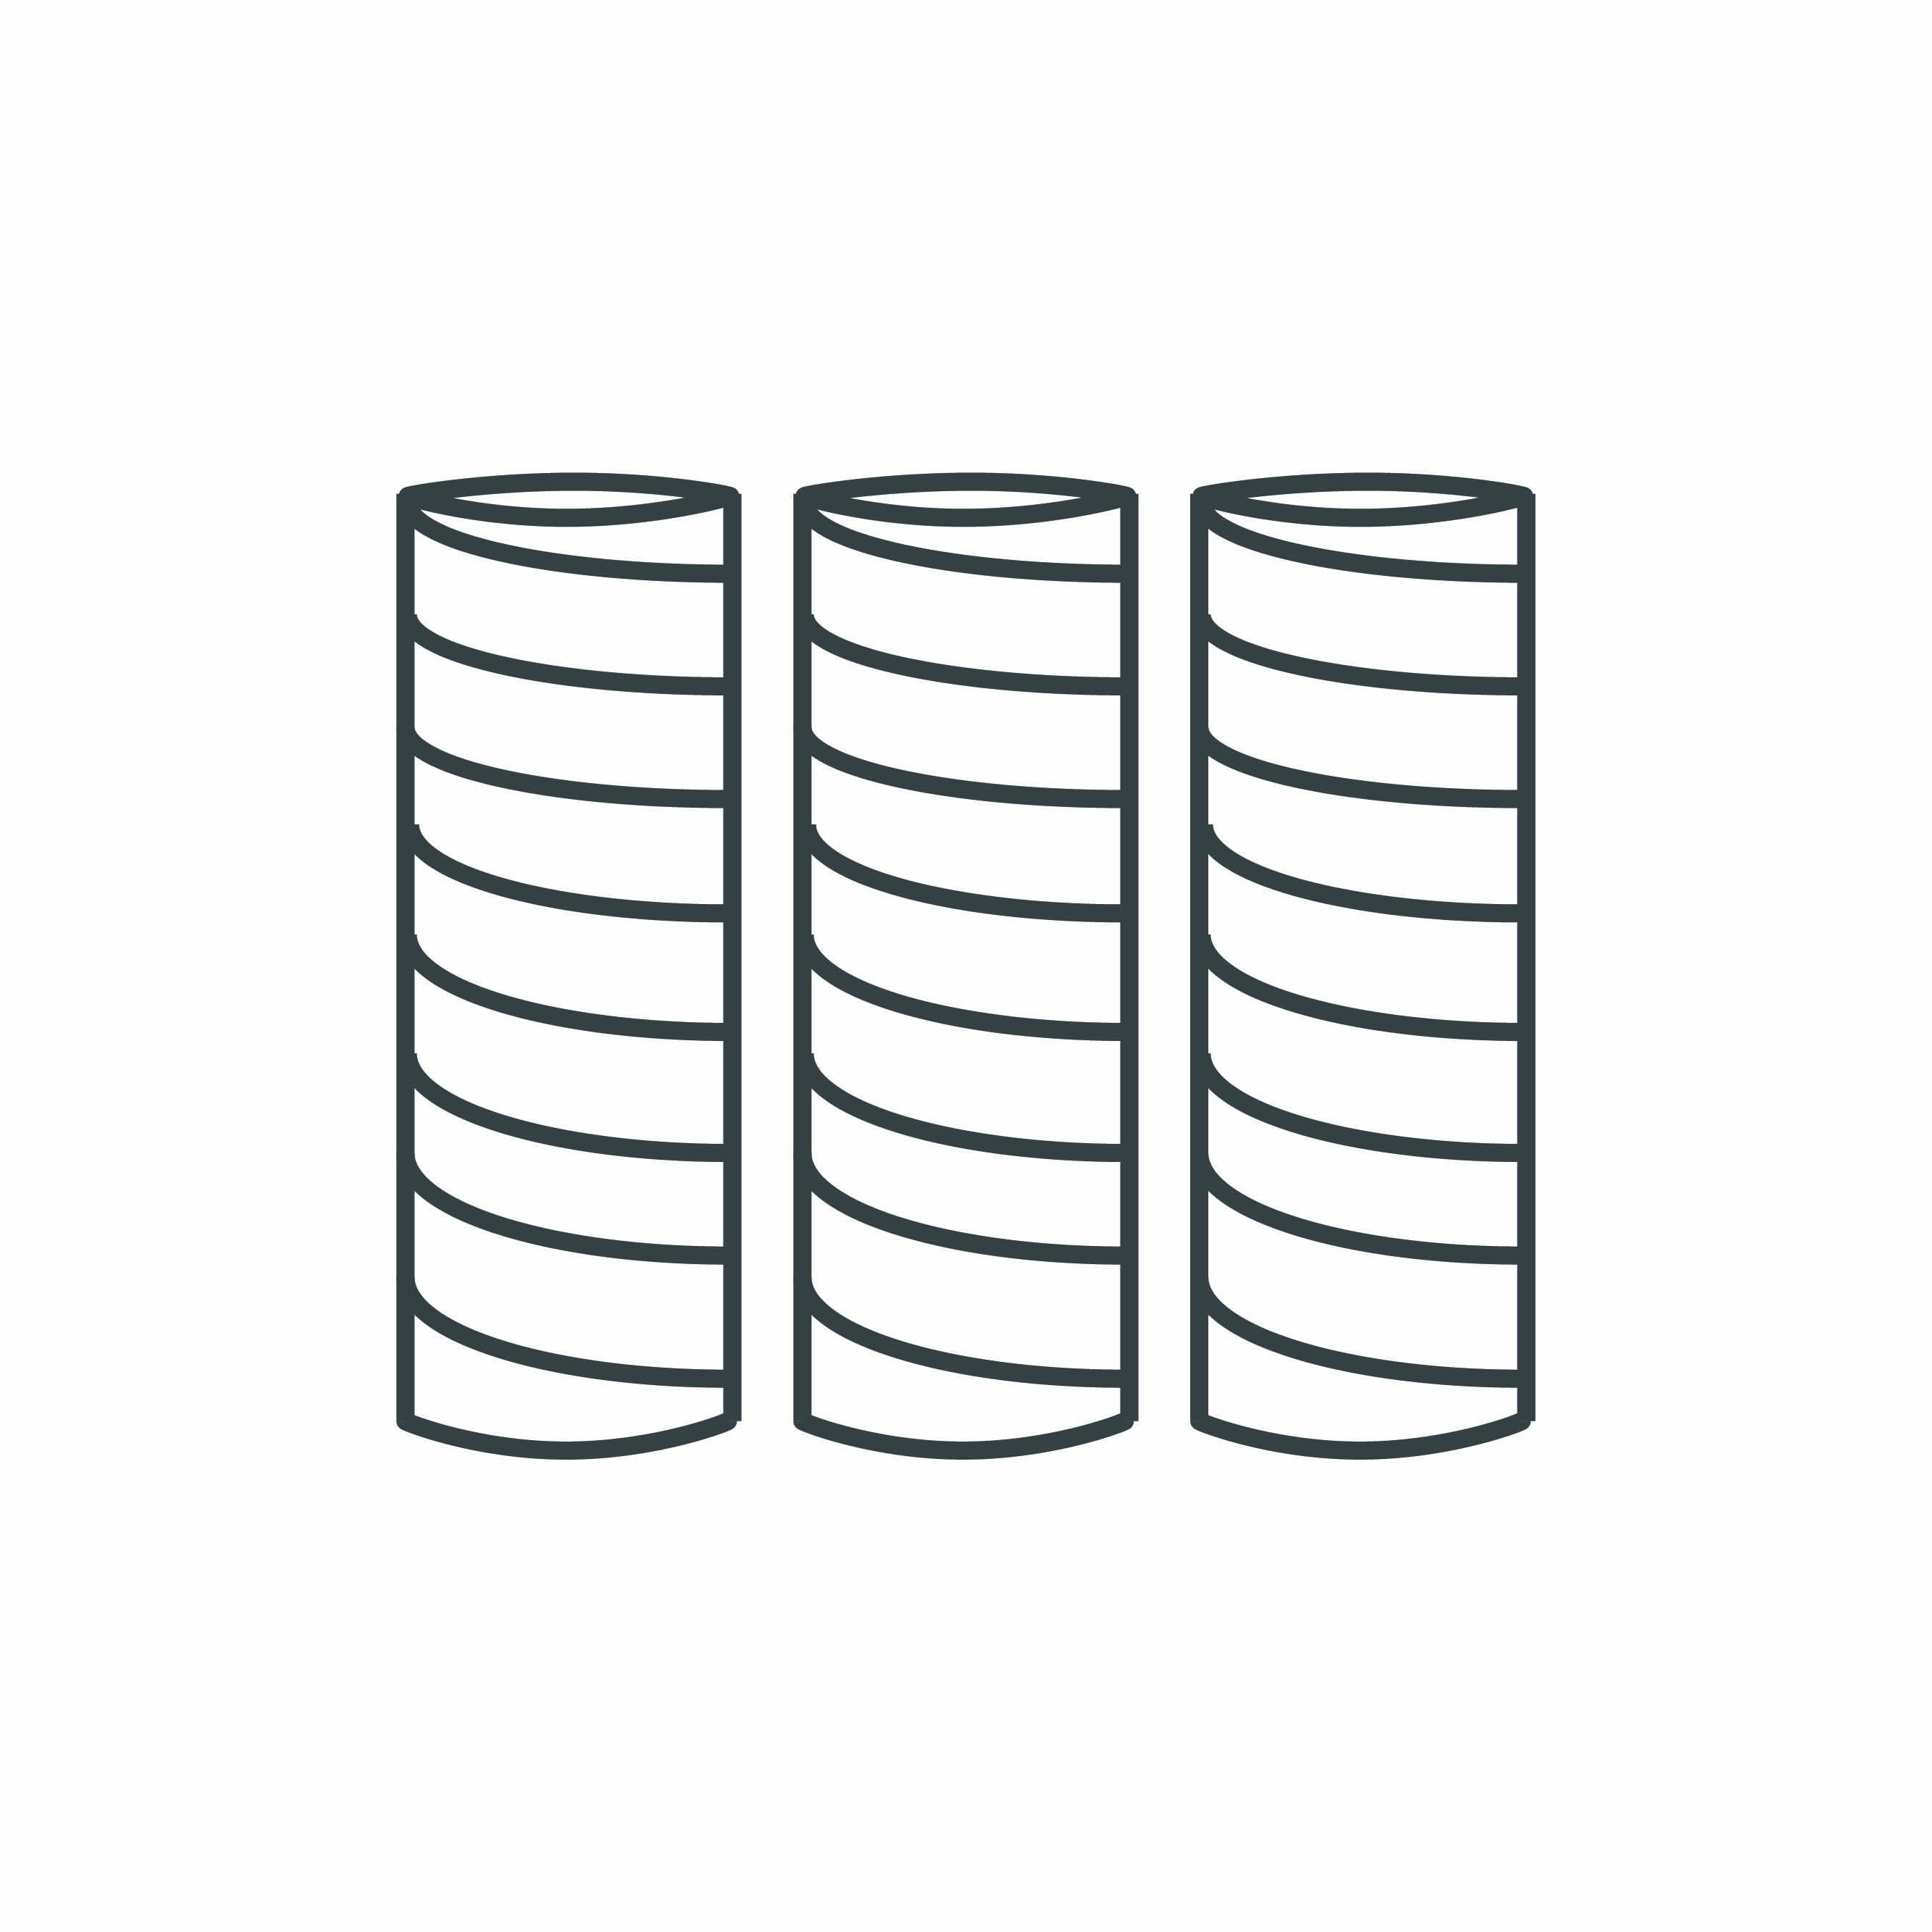 Powercore spring unit icon